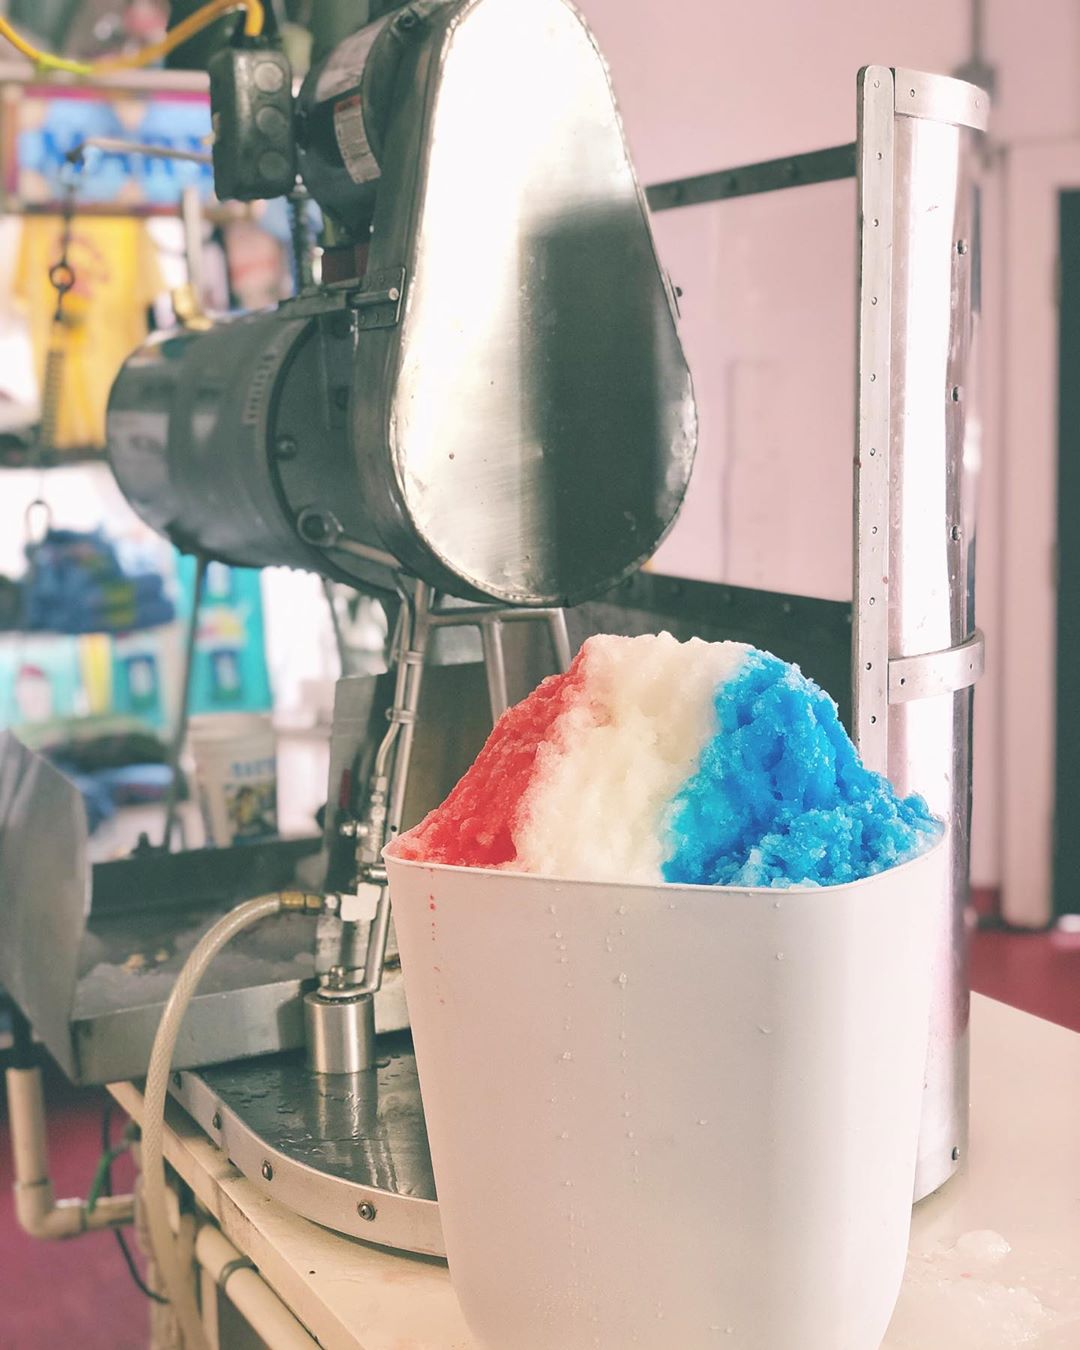 We will be OPEN regular hours this July 4th from 1-7 pm and all weekend, too. ✌🏽💜🍧🇺🇸